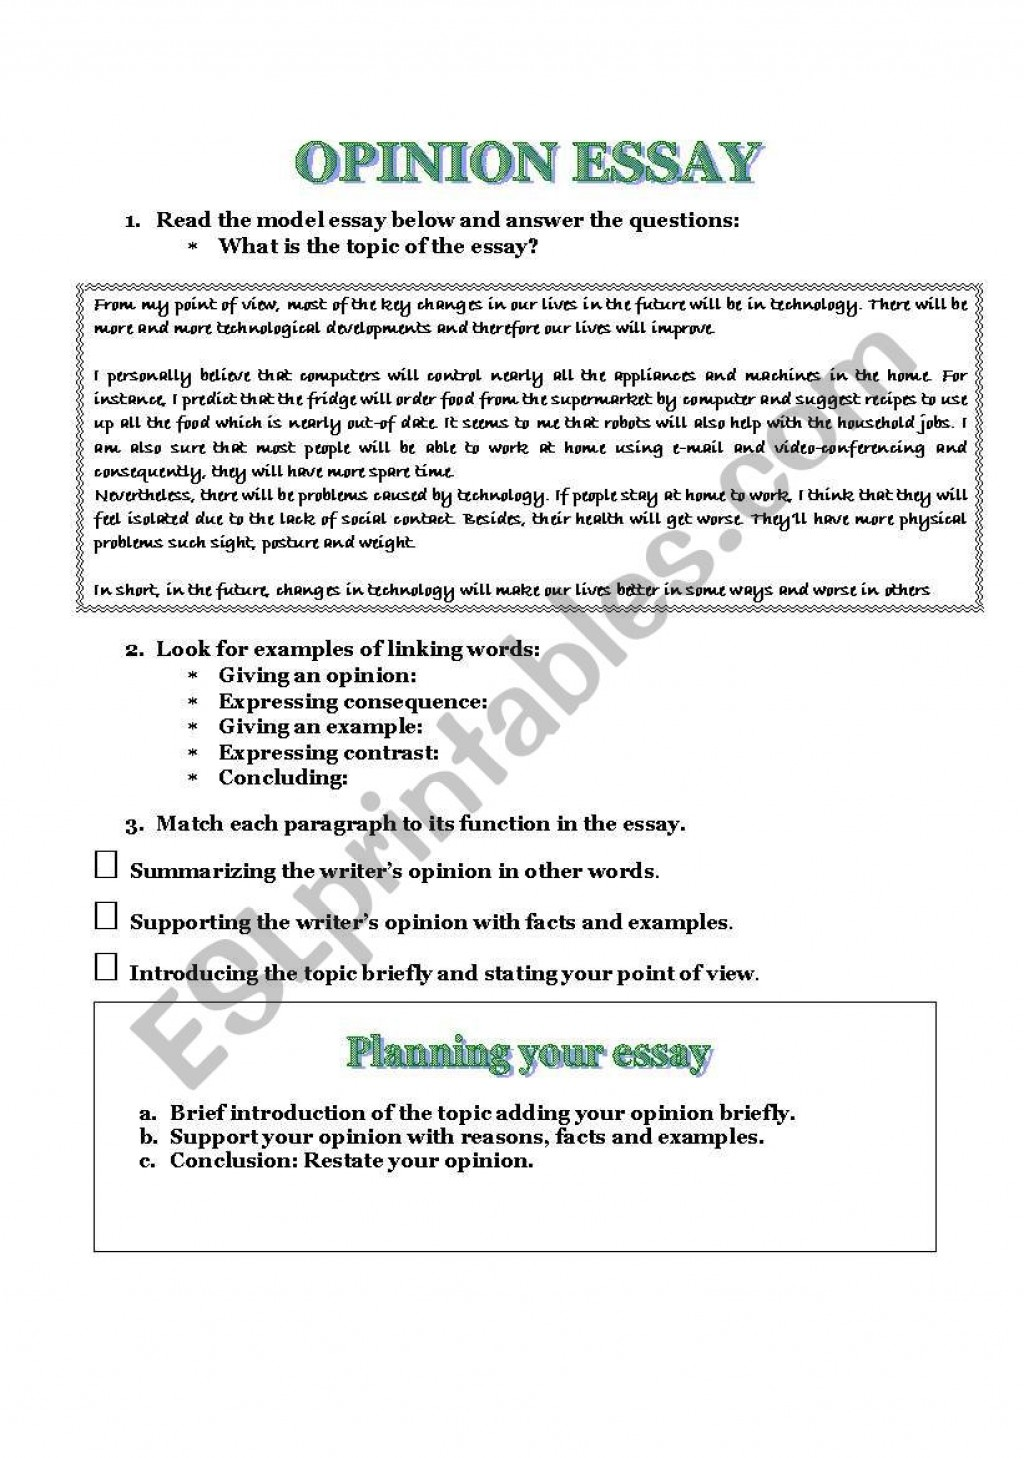 024 Opinion Essay Examples Example 210824 1 How To Write A Good Staggering Format Pdf Free Ielts Large